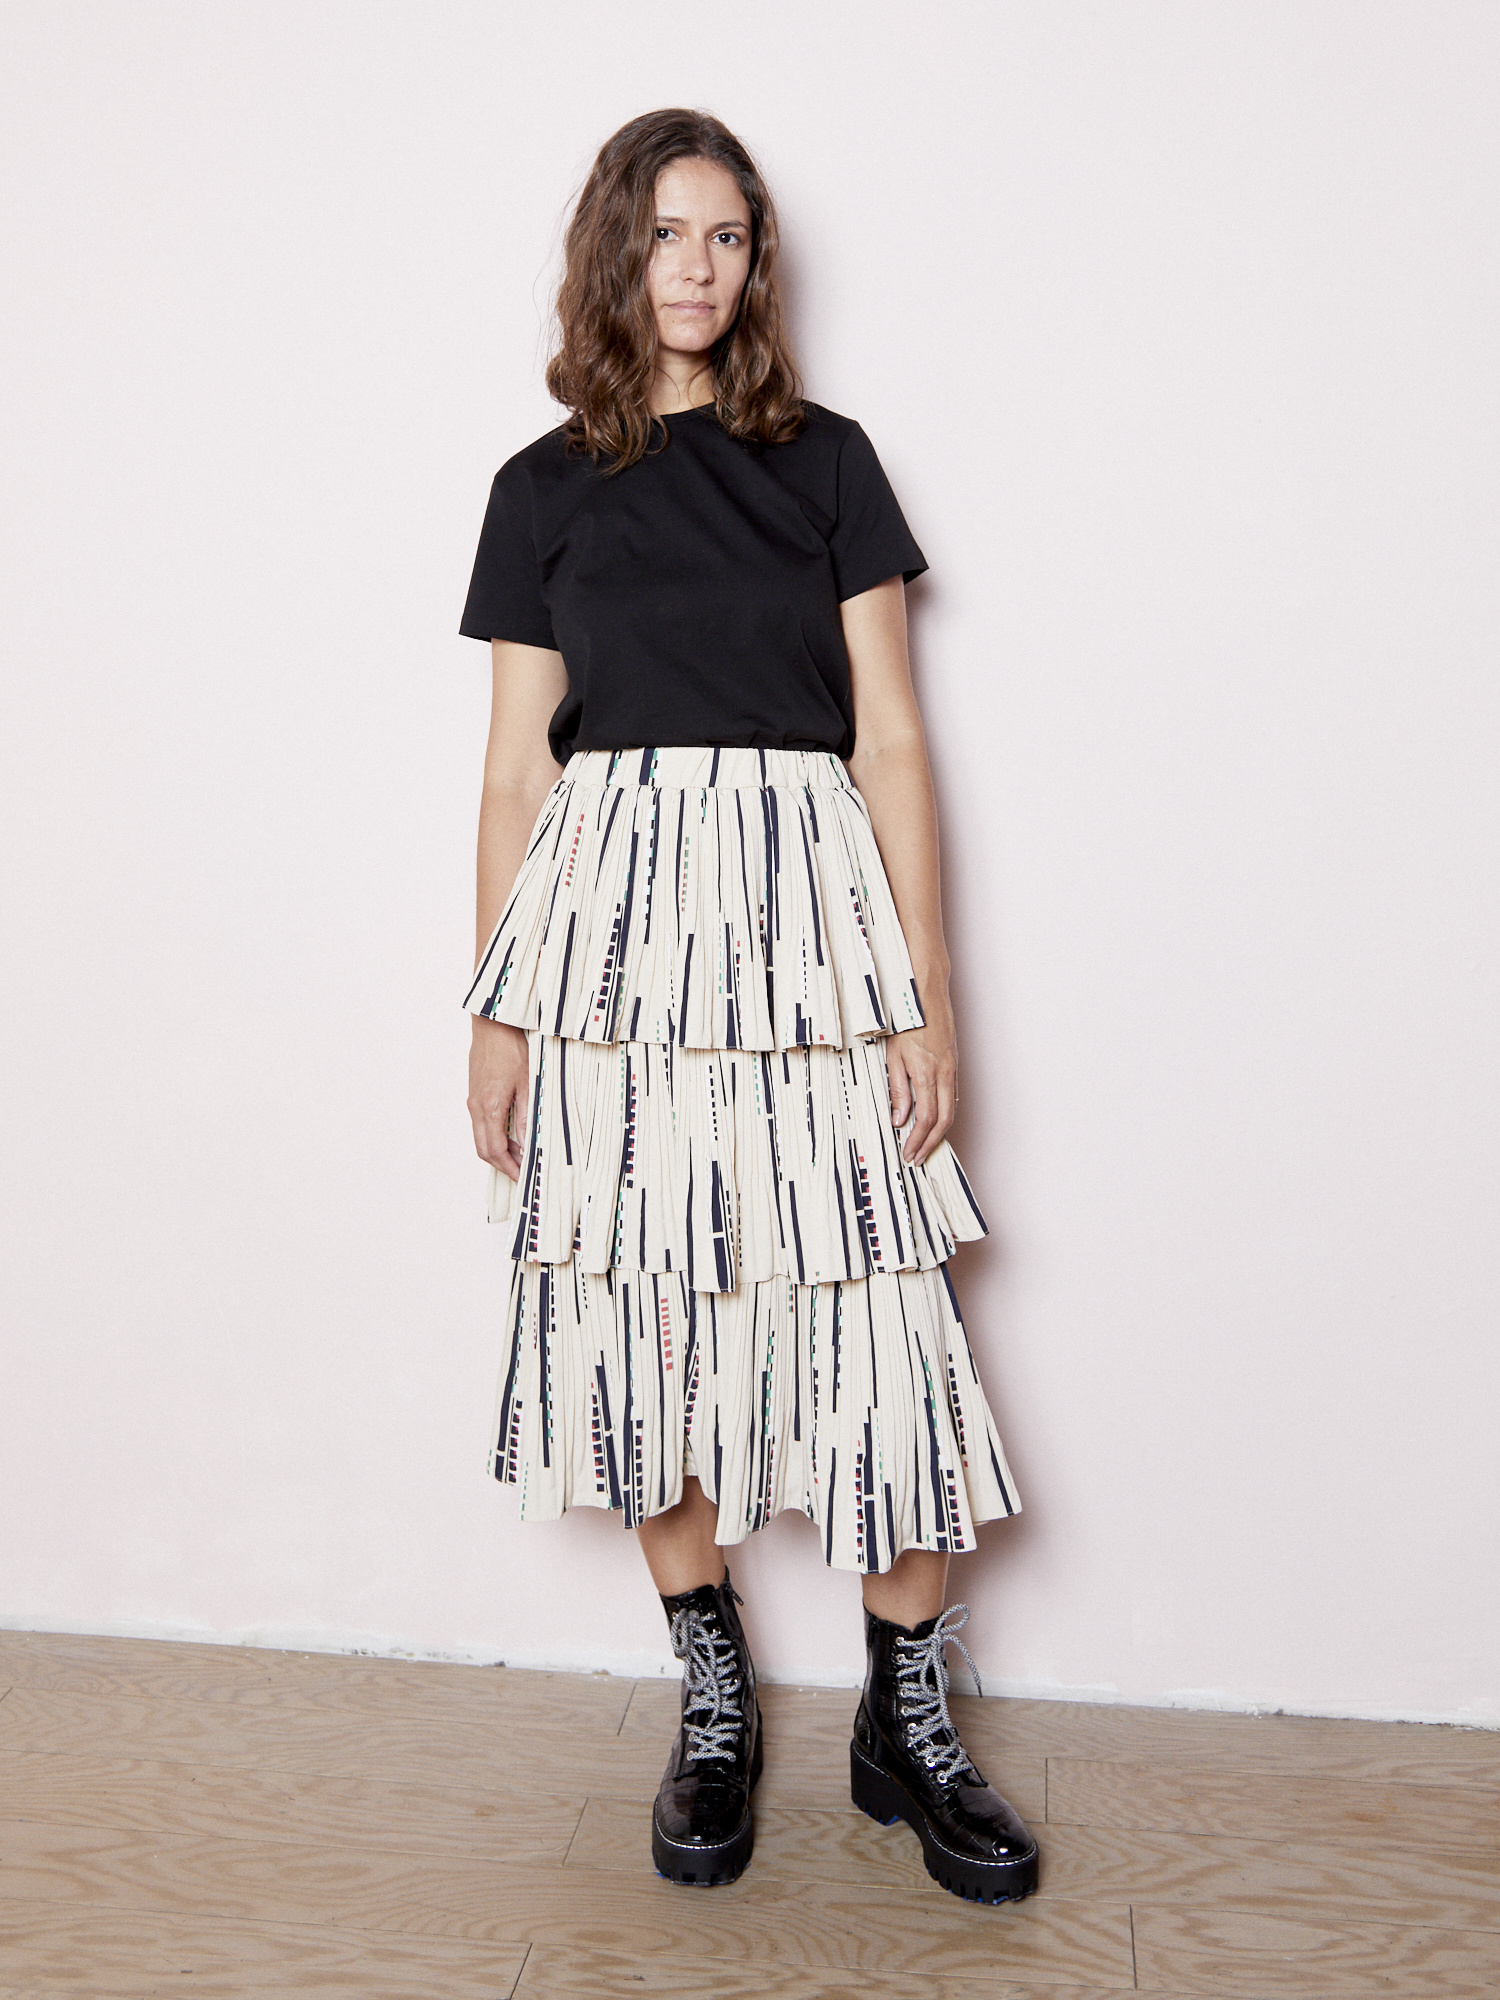 Erica Anna Ruffled Printed Skirt